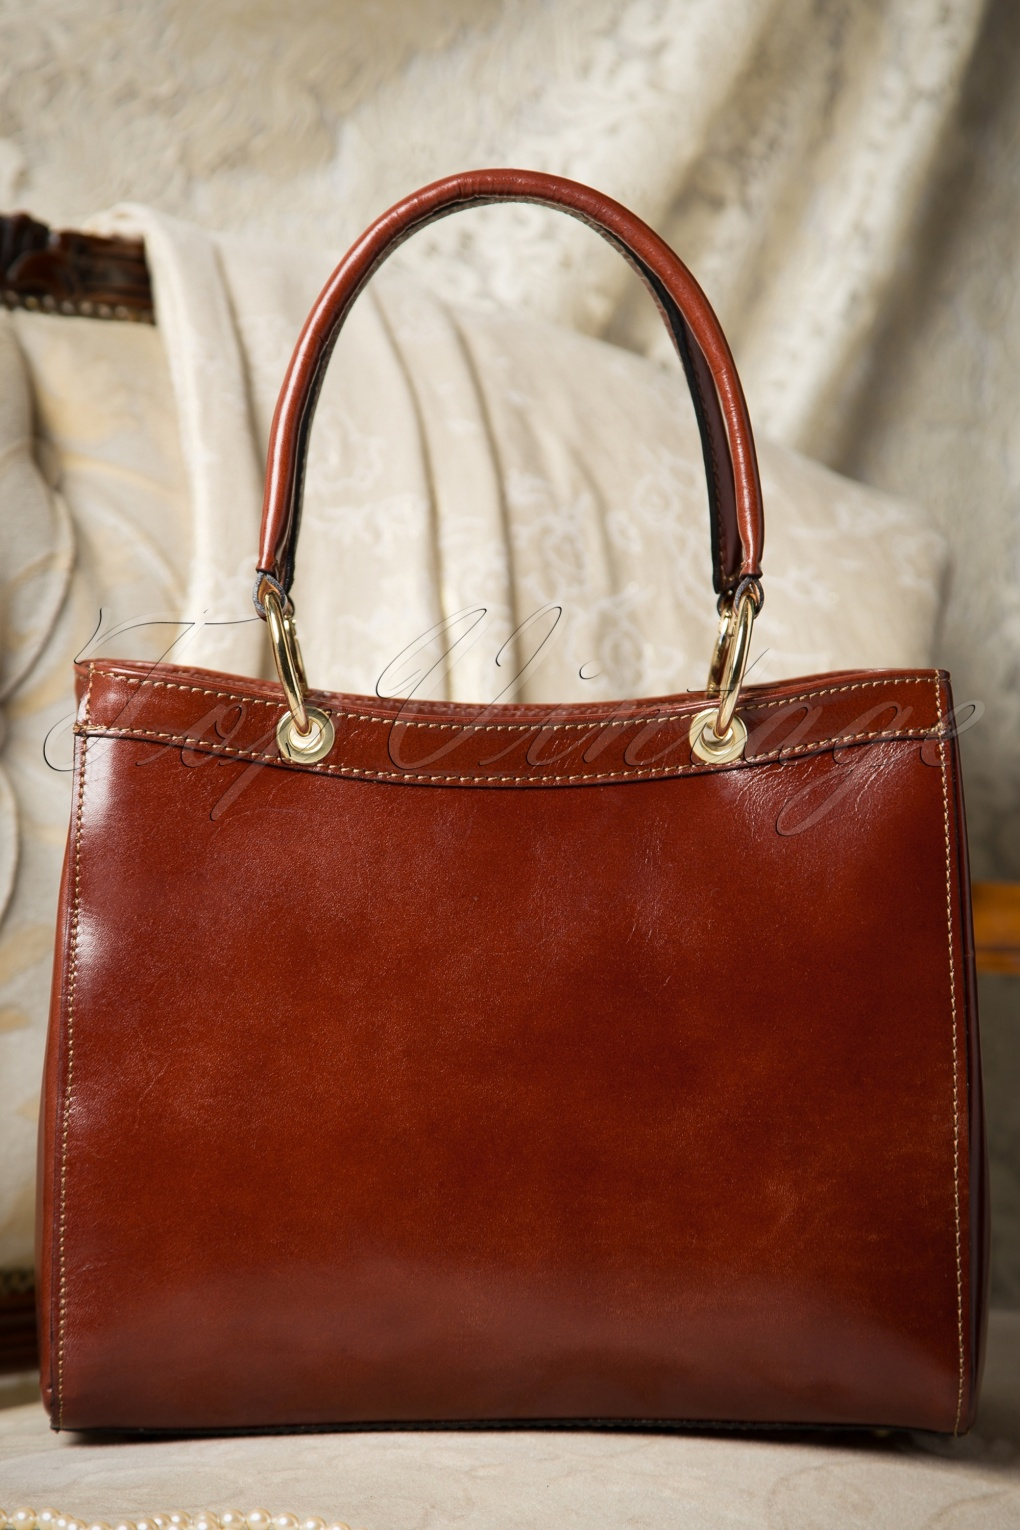 Retro Handbags, Purses, Wallets, Bags 60s Sadie Classy Brown Leather Handbag £63.65 AT vintagedancer.com